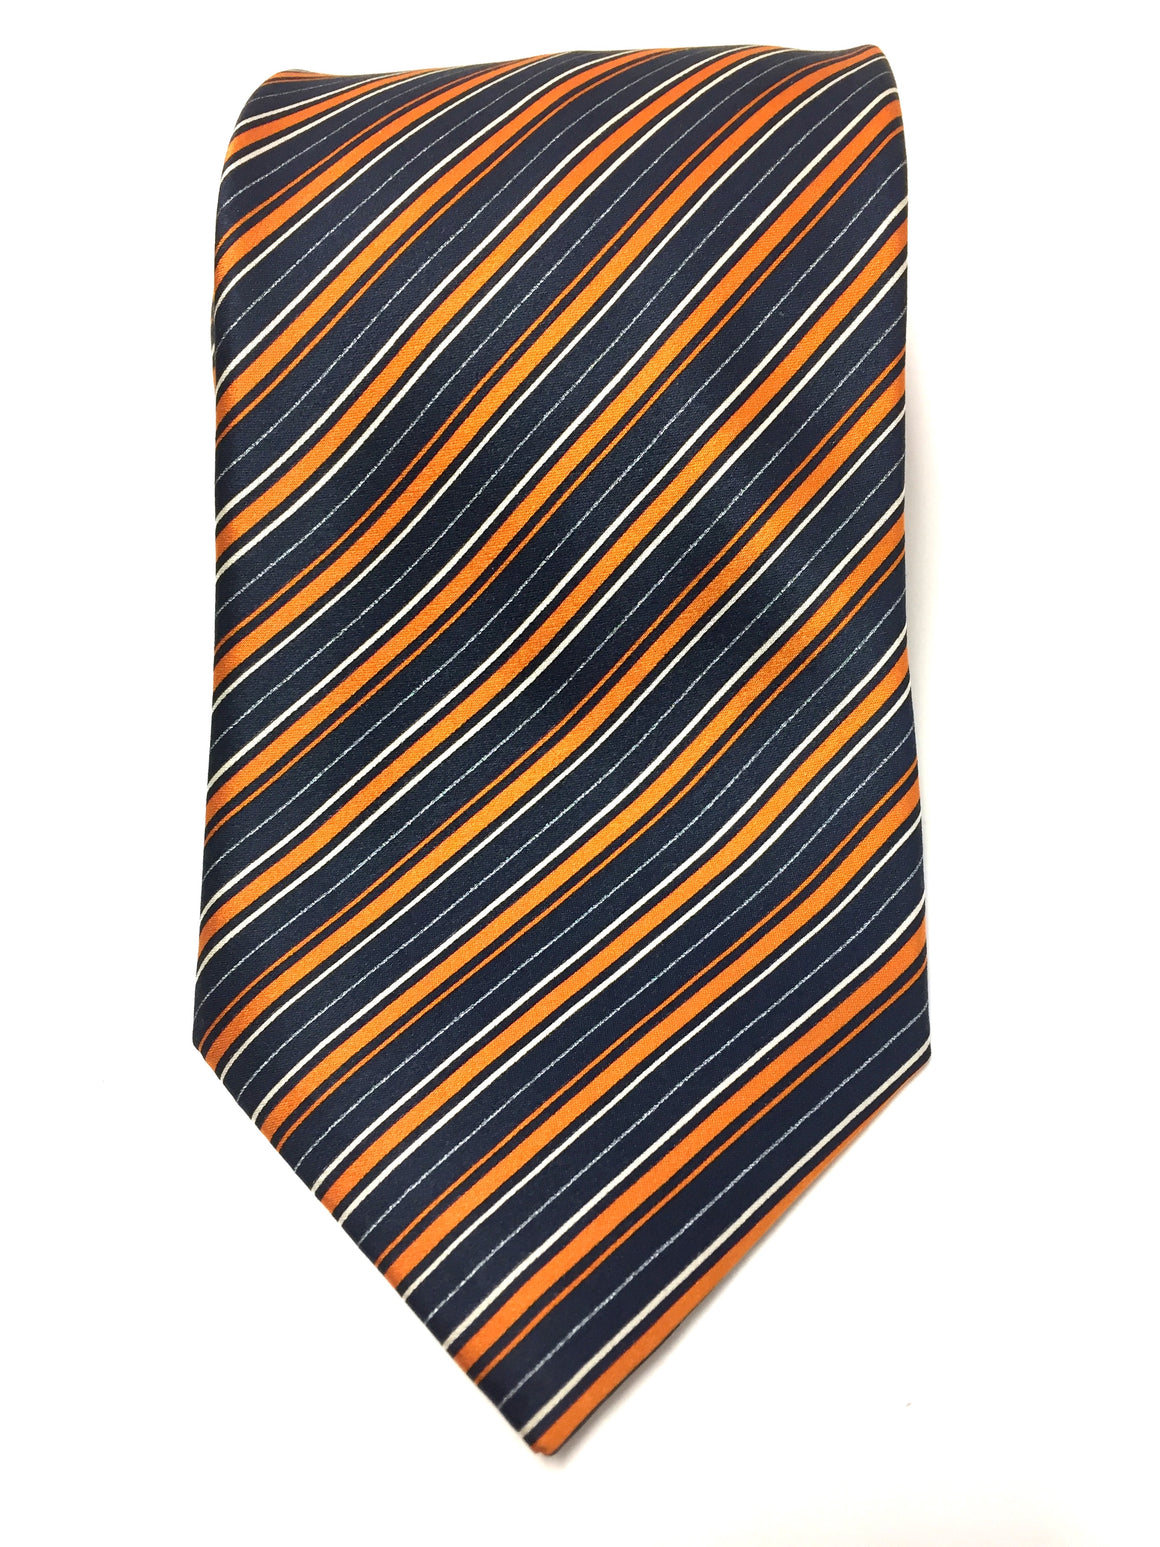 BRIONI Orange/Navy/White Diagonally-Striped Silk Men's Neck Tie